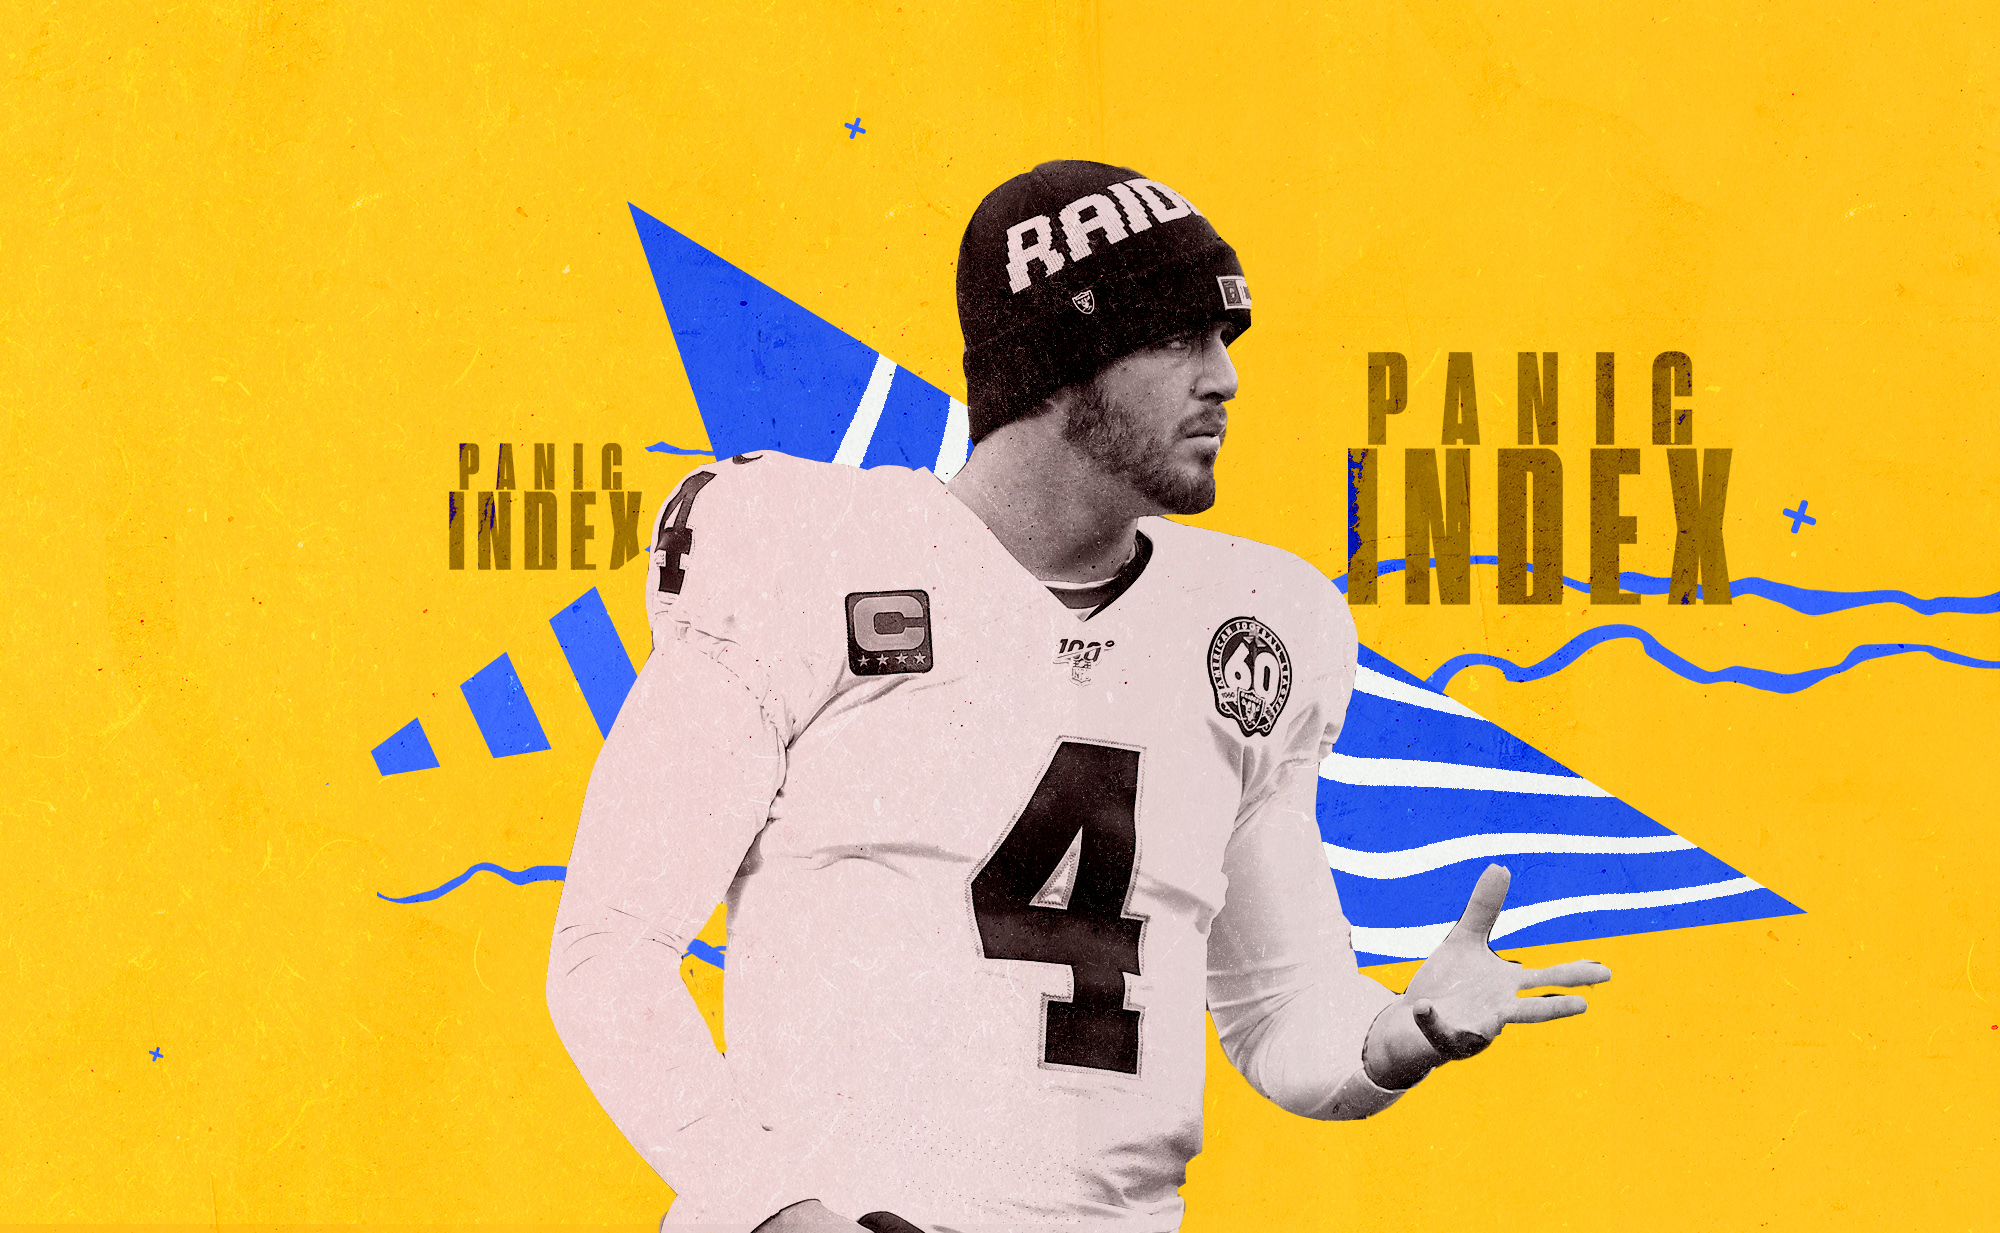 QB Derek Carr, wearing a Raiders beanie, holds his right hand open, superimposed on a yellow, white and blue background with the words PANIC INDEX